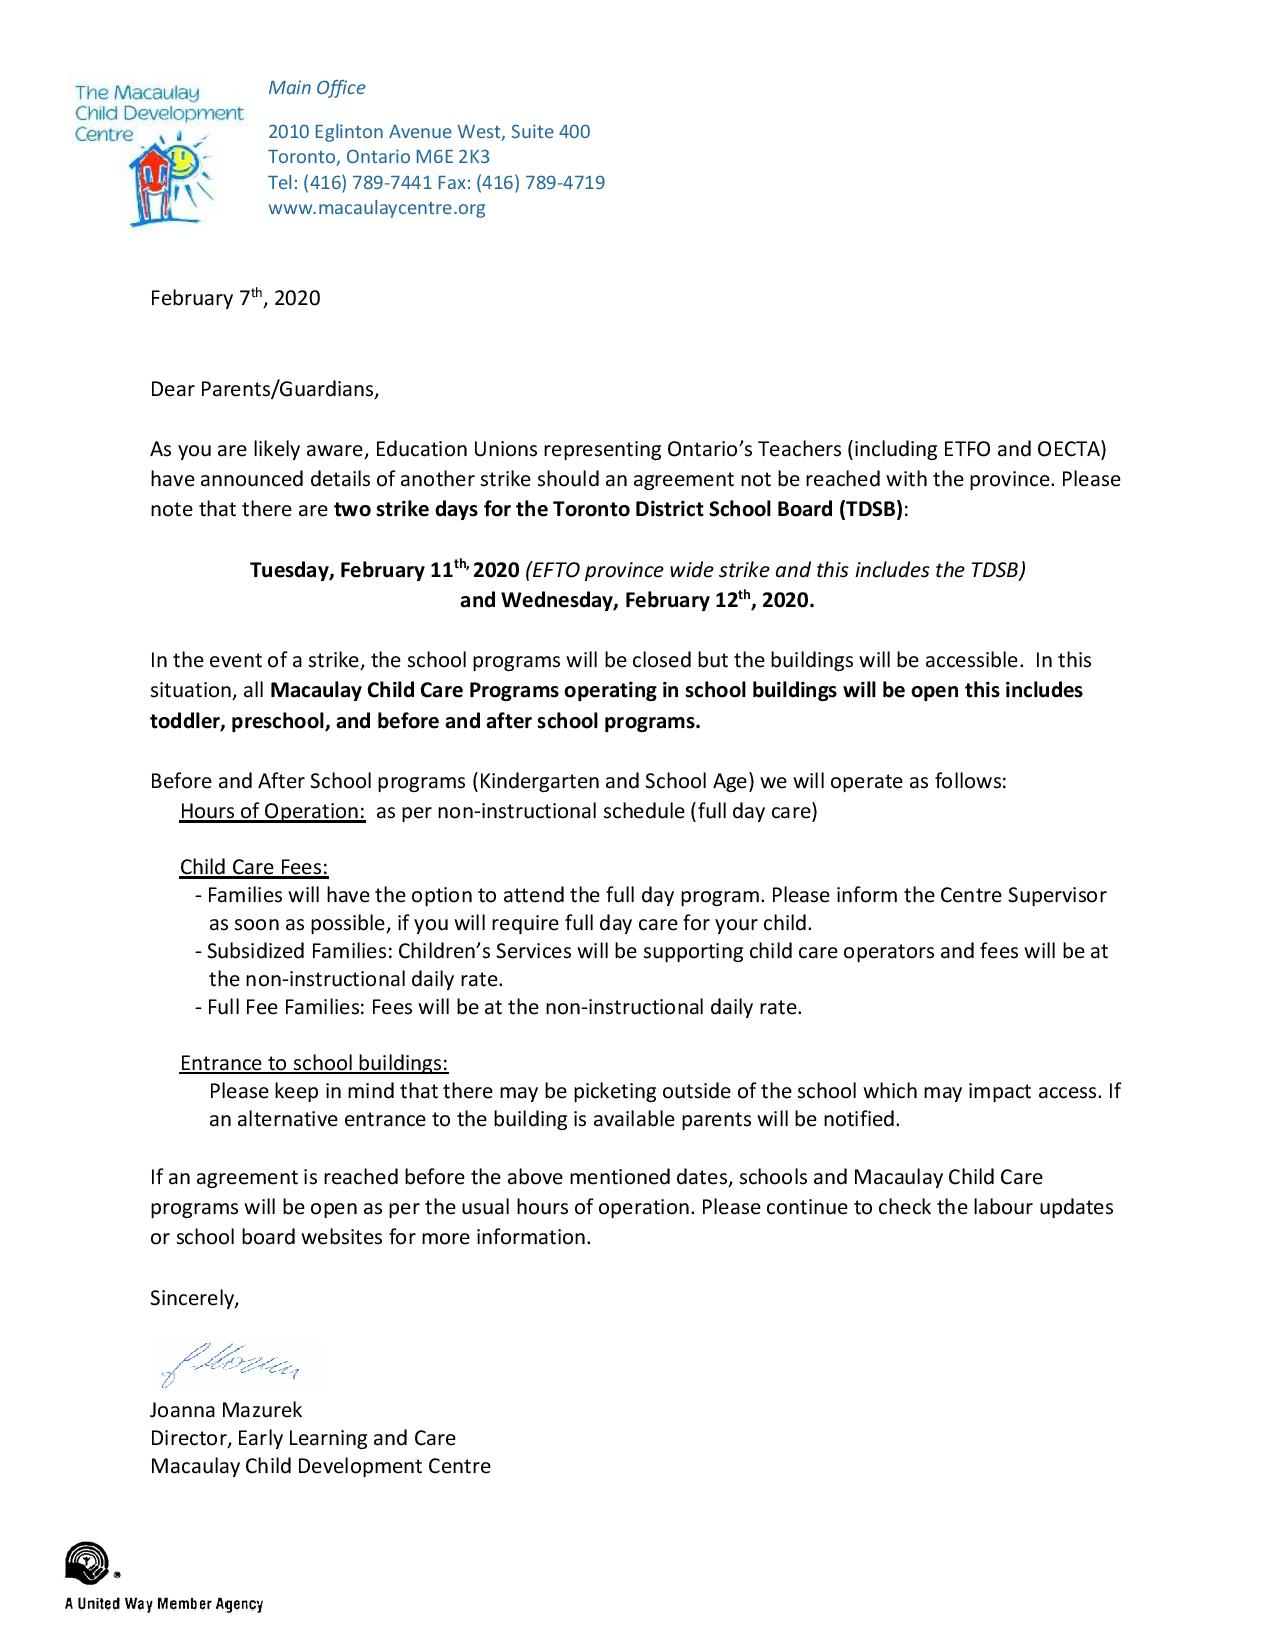 ETFO and OECTA Strike Action (UPDATE* February 10, 2020)